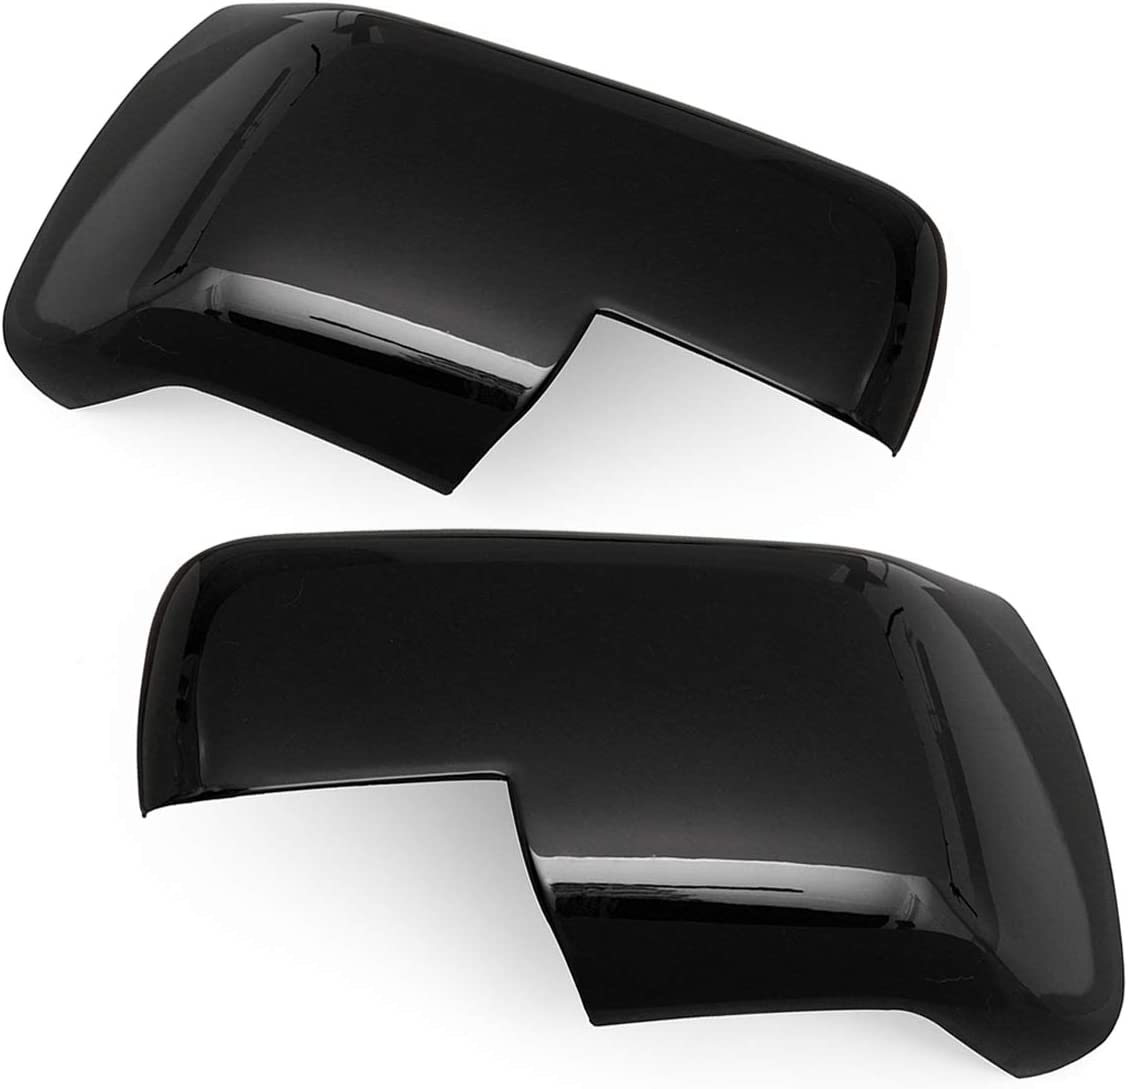 PeroFors Pair Gloss Black Car Wing Side Mirror Cover For Land Rover Discovery 3 Freelander 2 Range Rover Sport